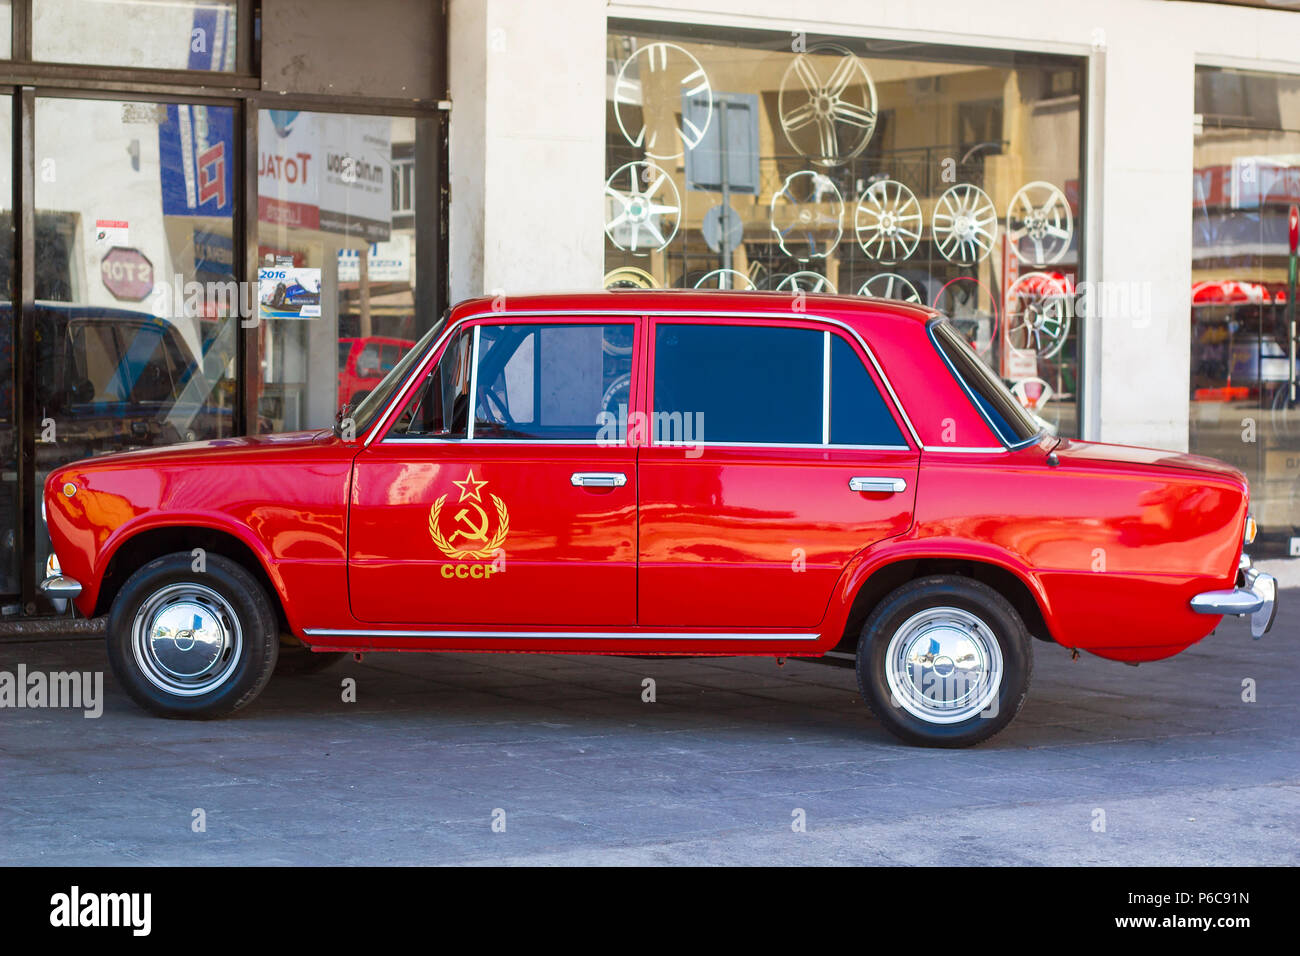 Red Car Zhiguli With Symbol Hammer And Sickle And Inscription Ussr